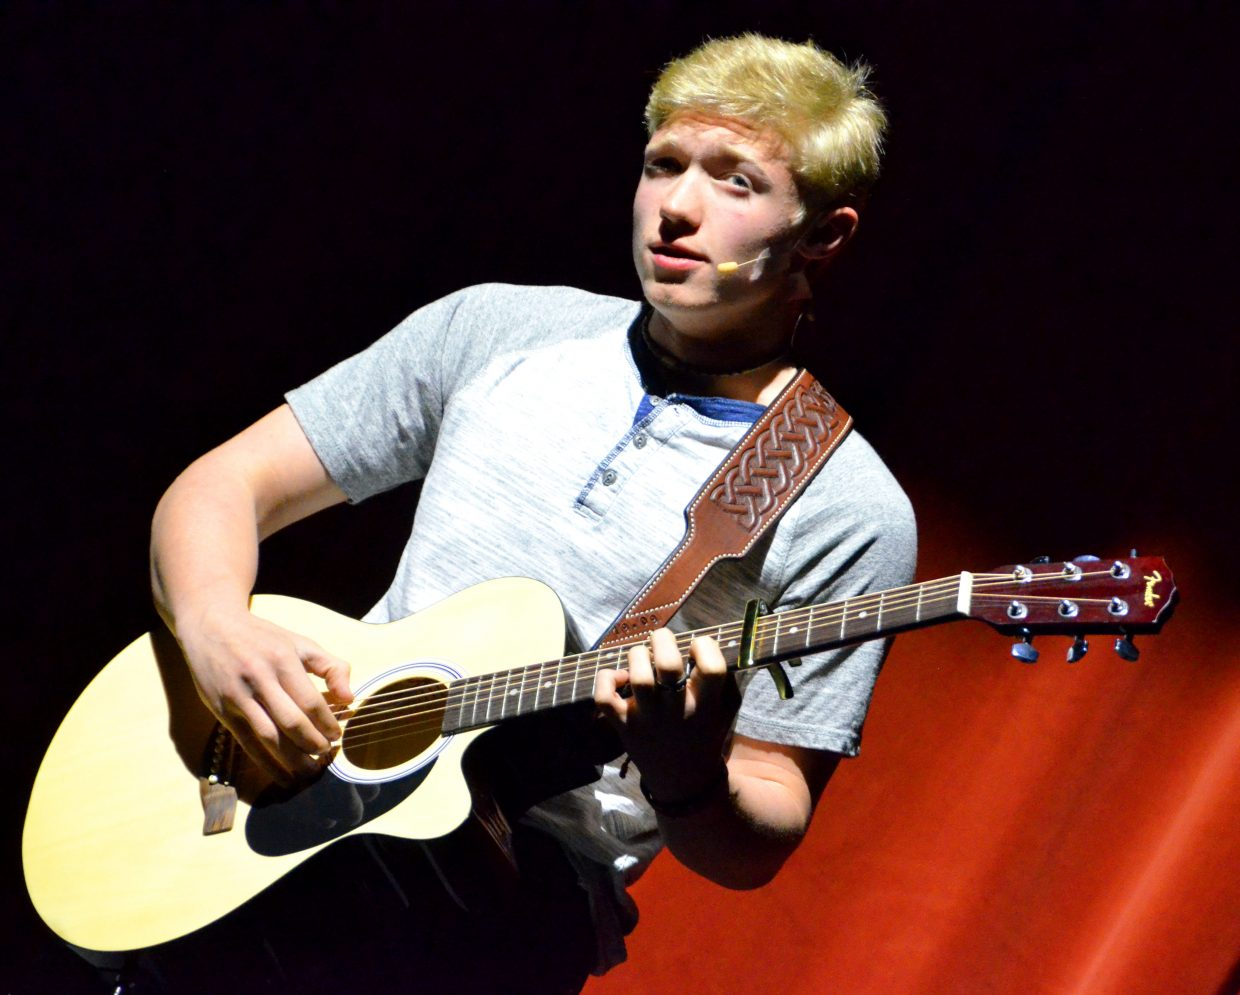 Logan Duke sings and strums to Ed Sheeran's